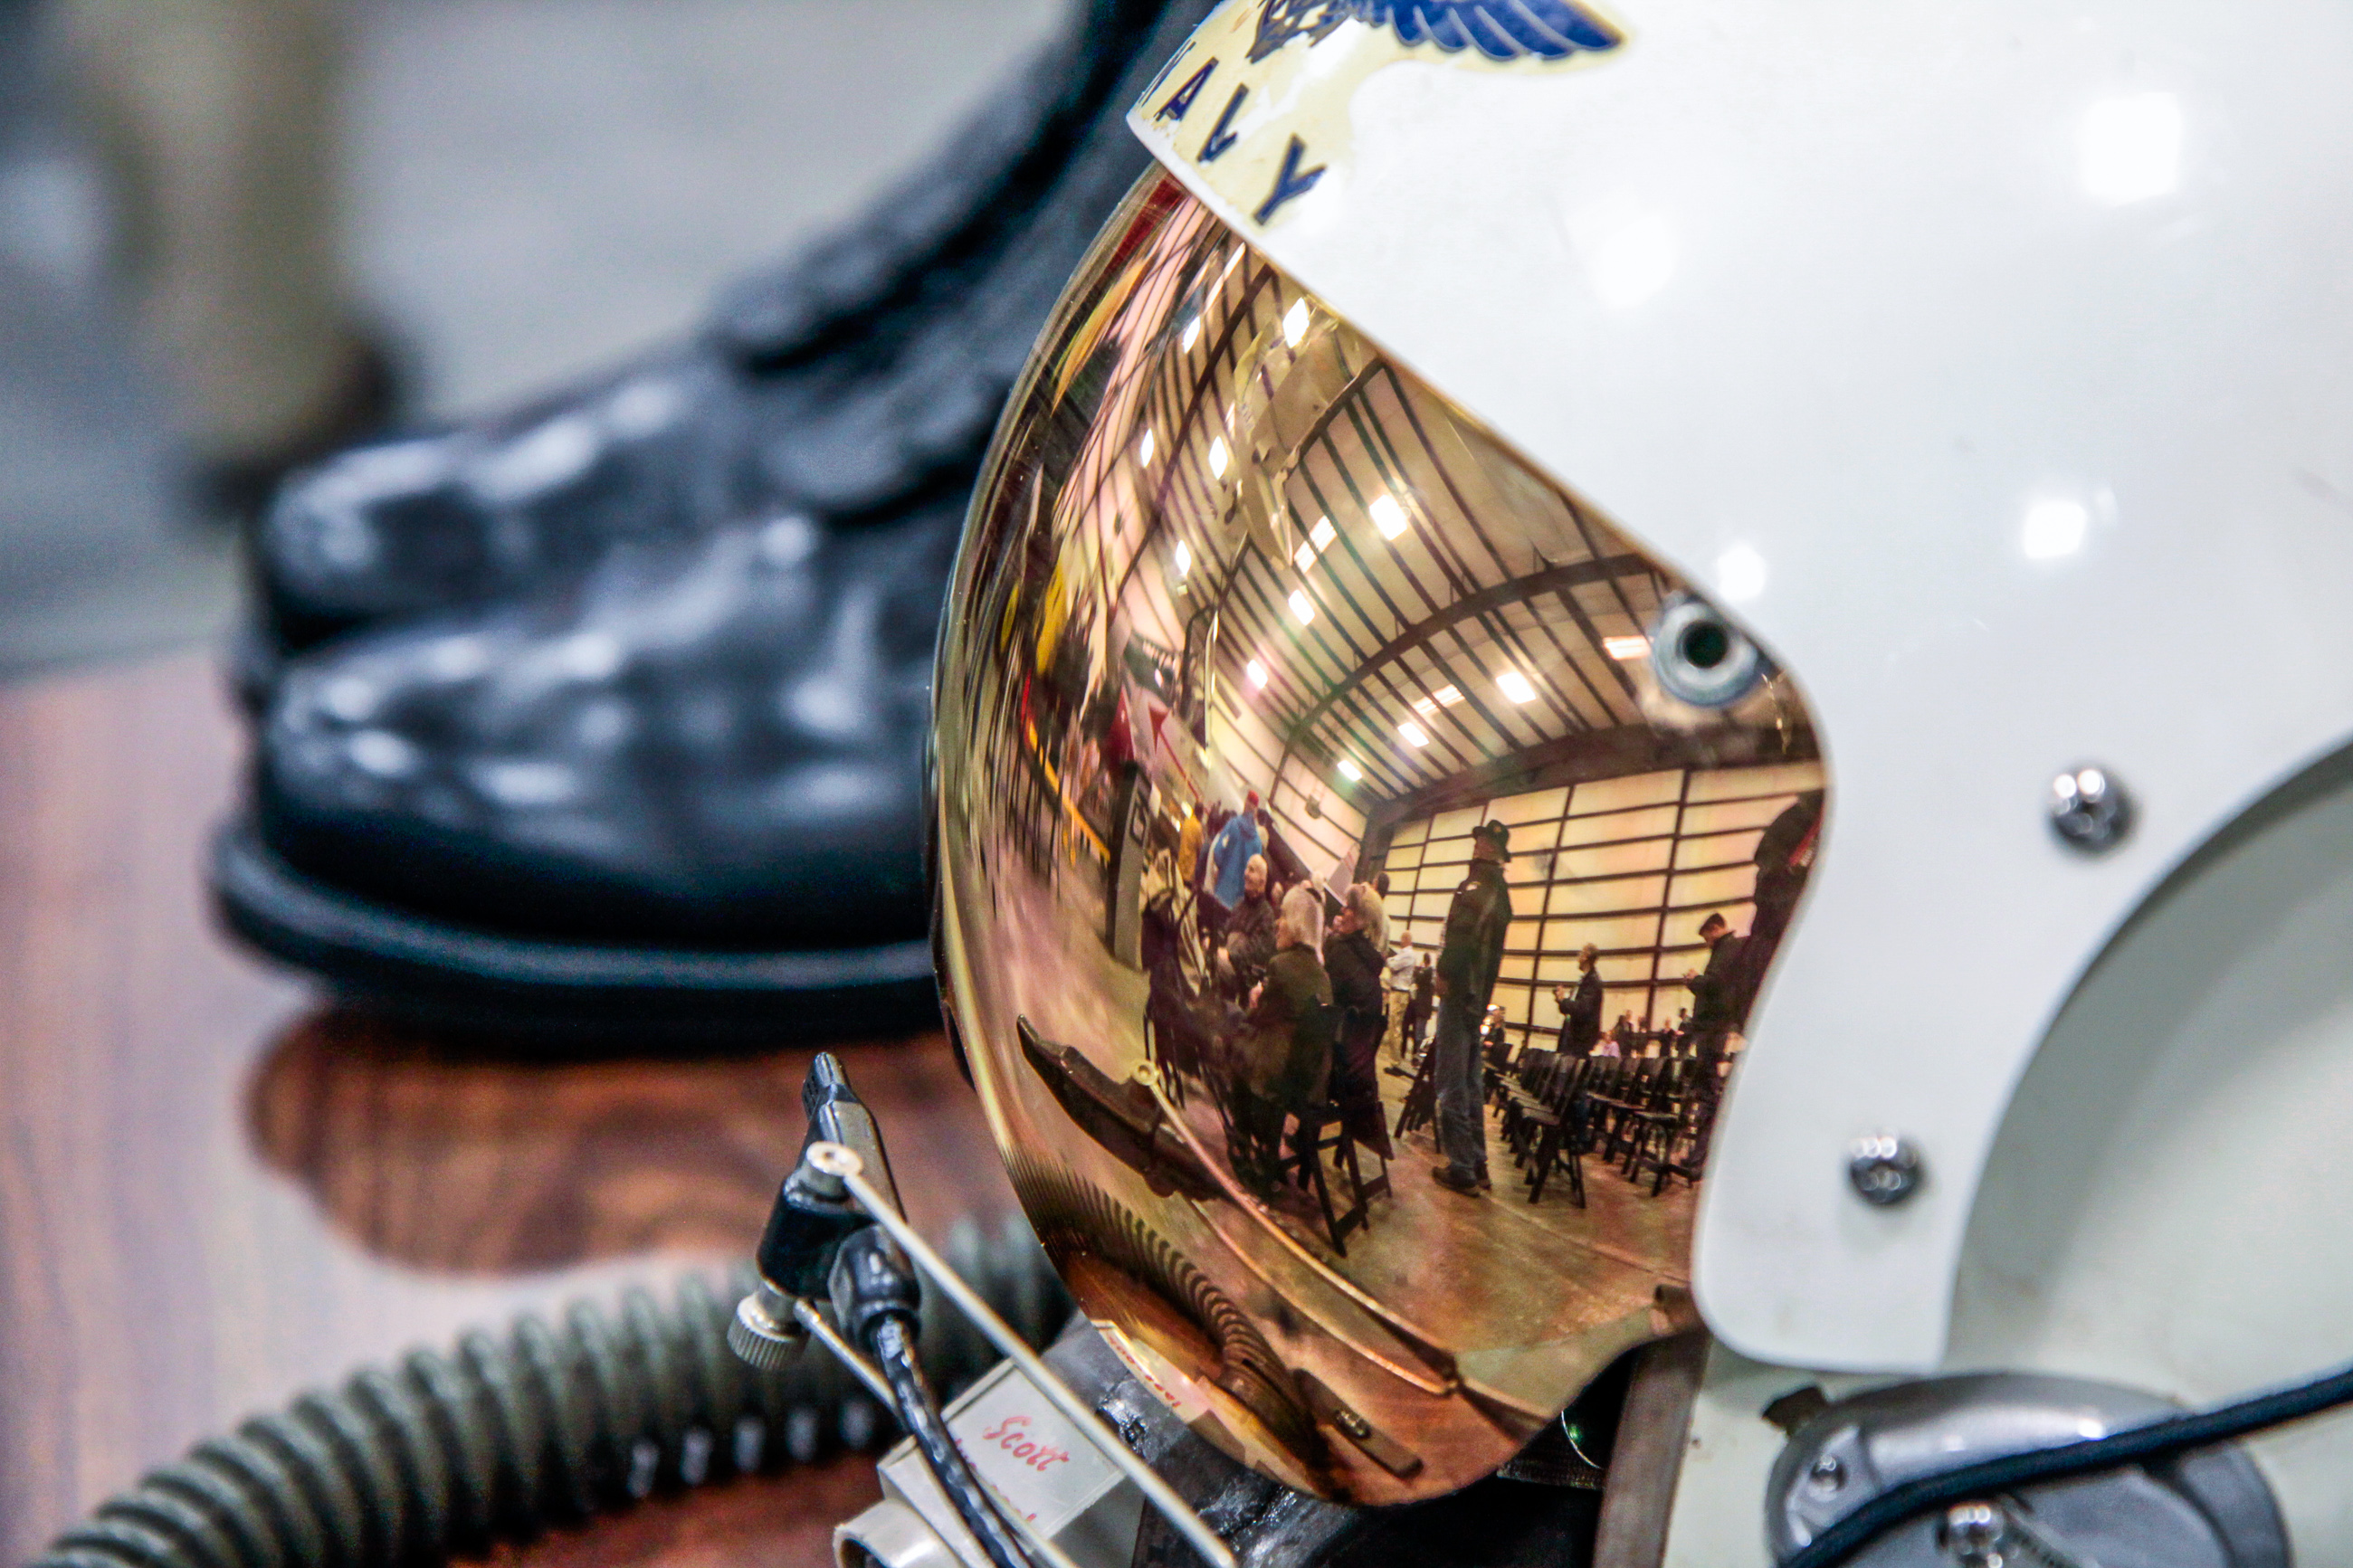 The XF8U-1 Crusader unveiling ceremony artistically caught in the visor reflection from a period US Navy flight helmet at the Museum of Flight's restoration hangar in Everett, Washington. (photo by Ted Huetter/Museum of Flight)